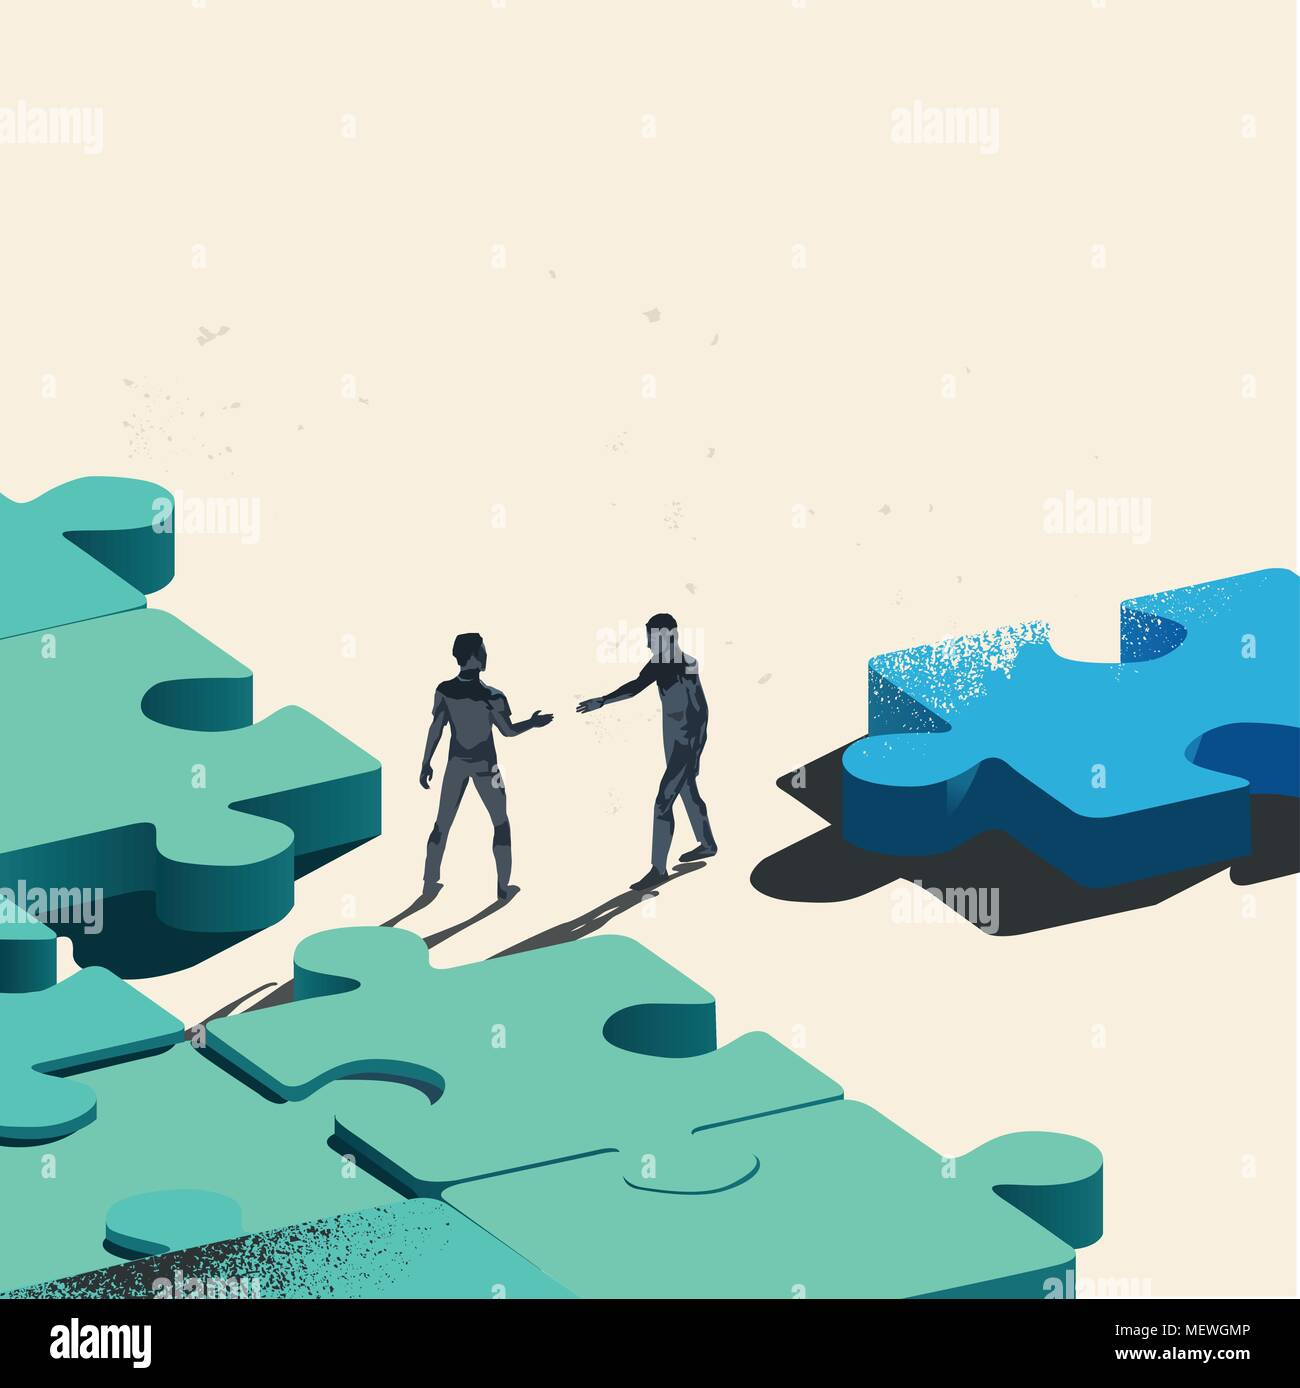 Final Piece Of The Puzzle. Two Businessmen about to shake hands over trading a jigsaw puzzle piece needed for the solution. Conceptual vector - Stock Vector